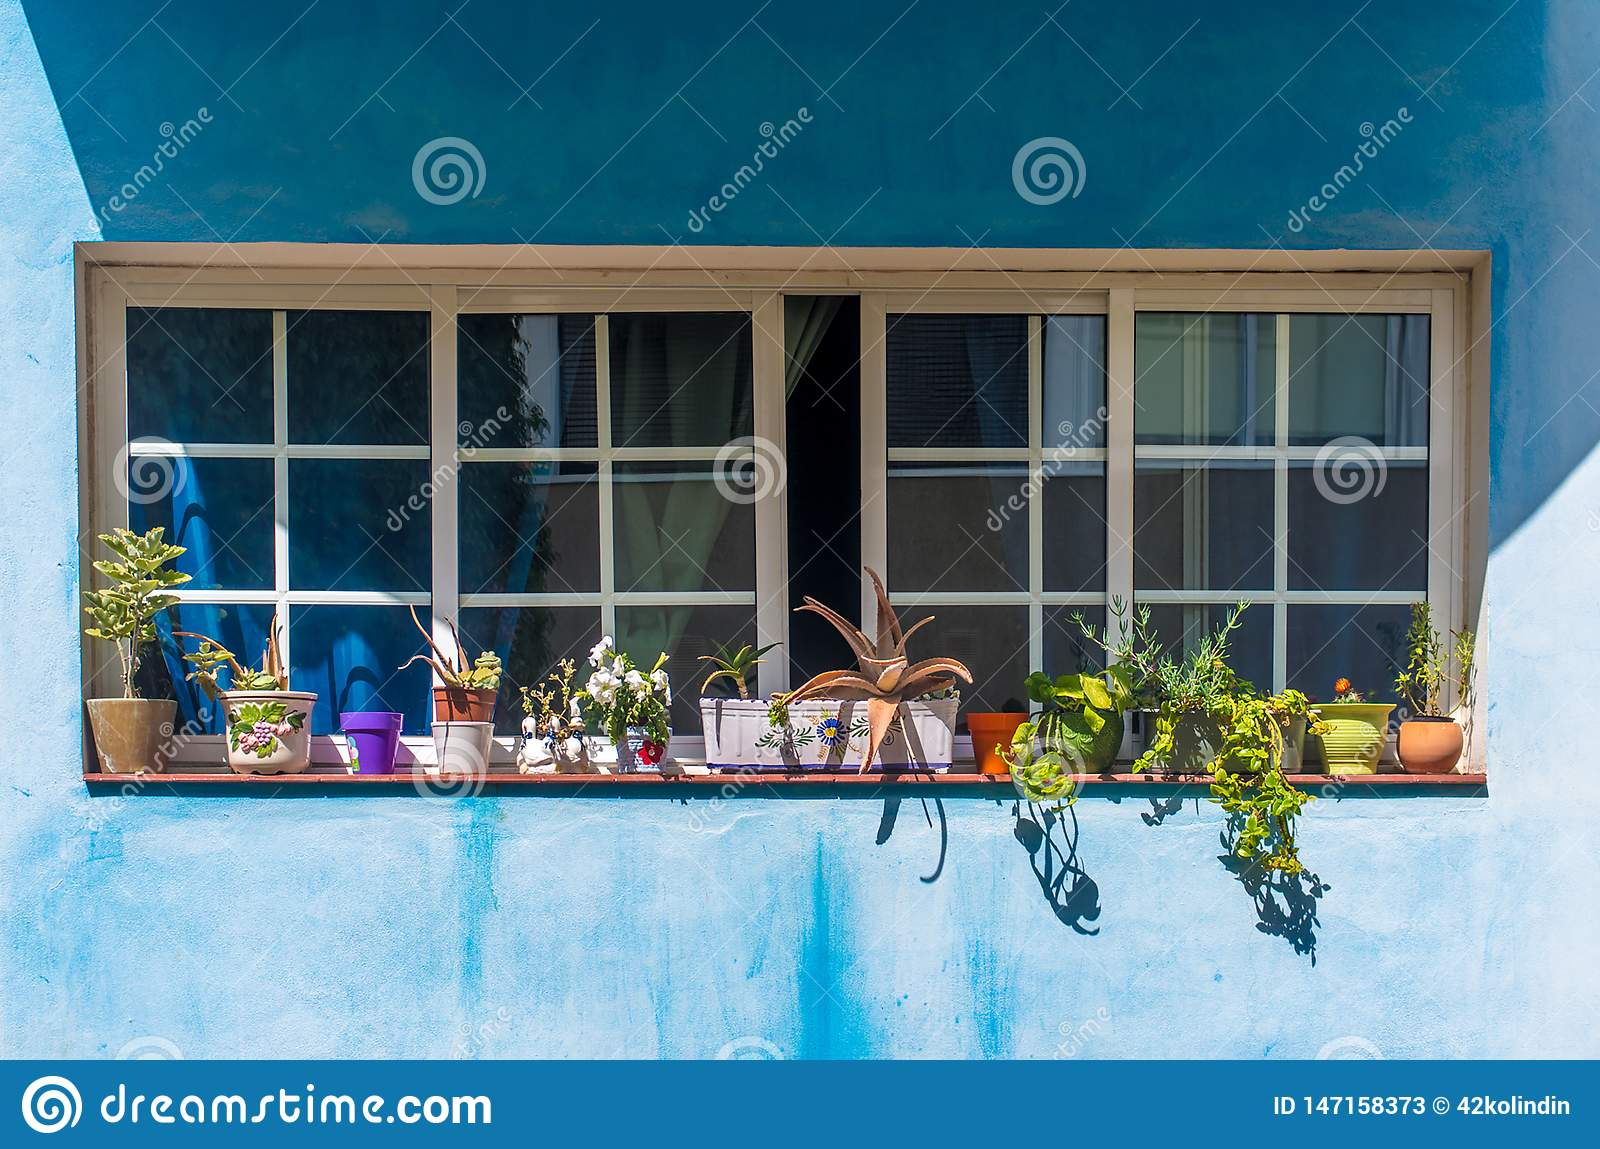 Beautiful flowers in the open close windows on blue canarian wall